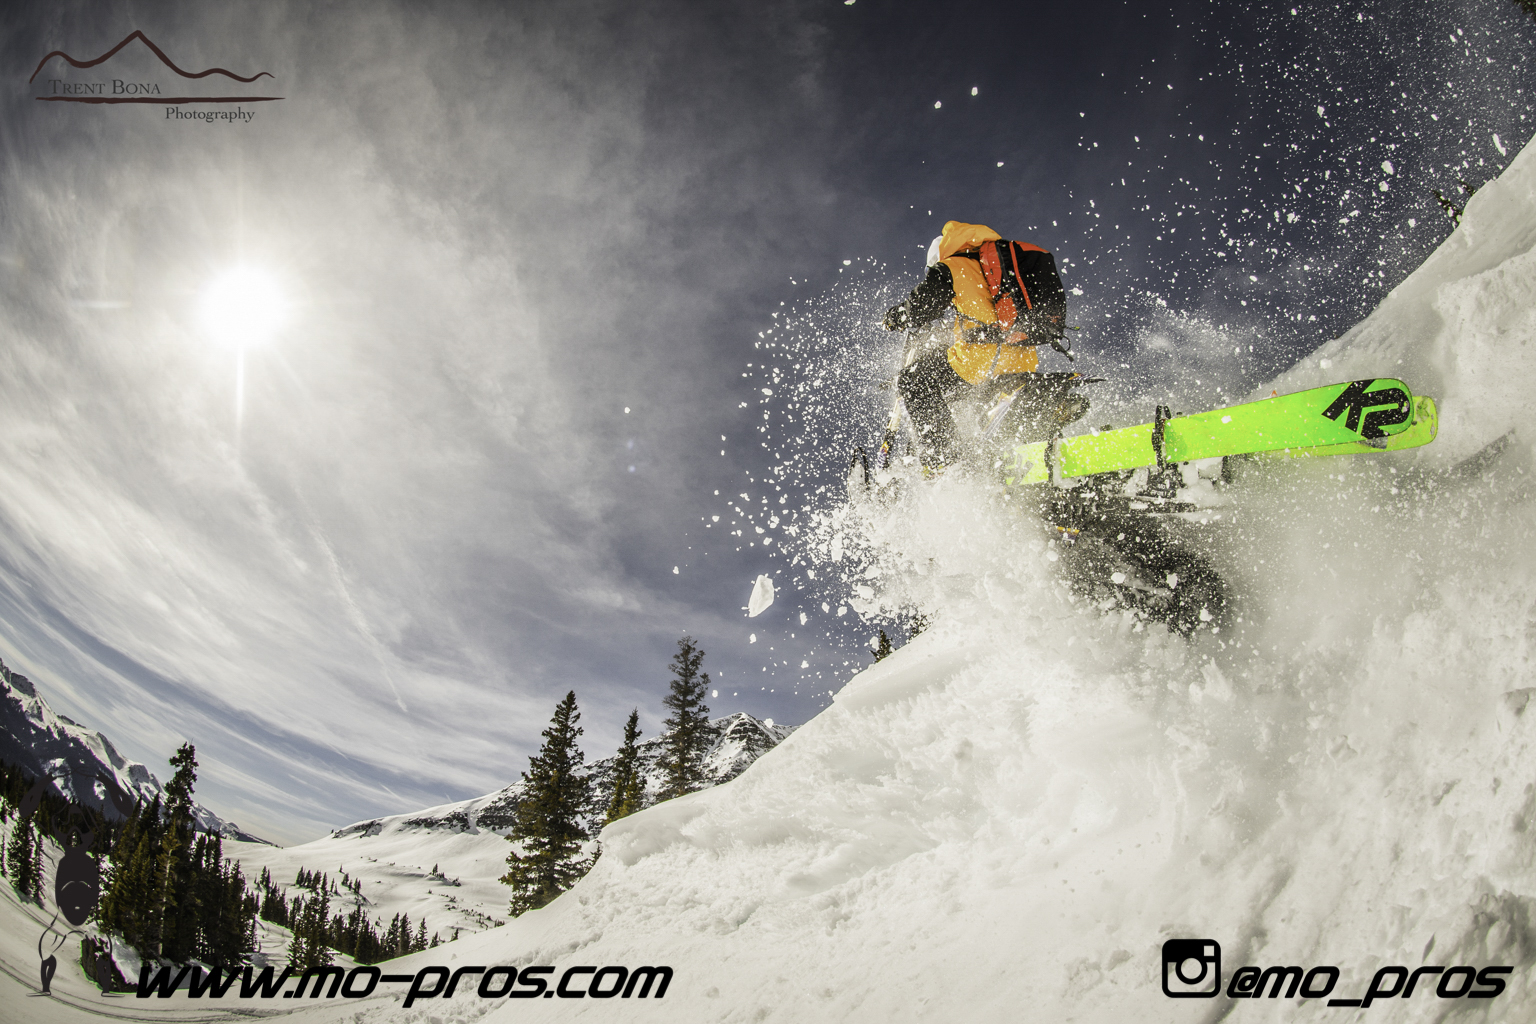 39_Snowbike_Timbersled Rack_Tsaina Rack_CFR rack_Cheetah Factory Racing_Snowboard rack_snowboard_snowmobile bag_Snowmobile_timbersled bag_gas Rack_Gear_Gun Rack_LinQ Snowboard Ski_Ski_Snowboarding_Ti.jpg